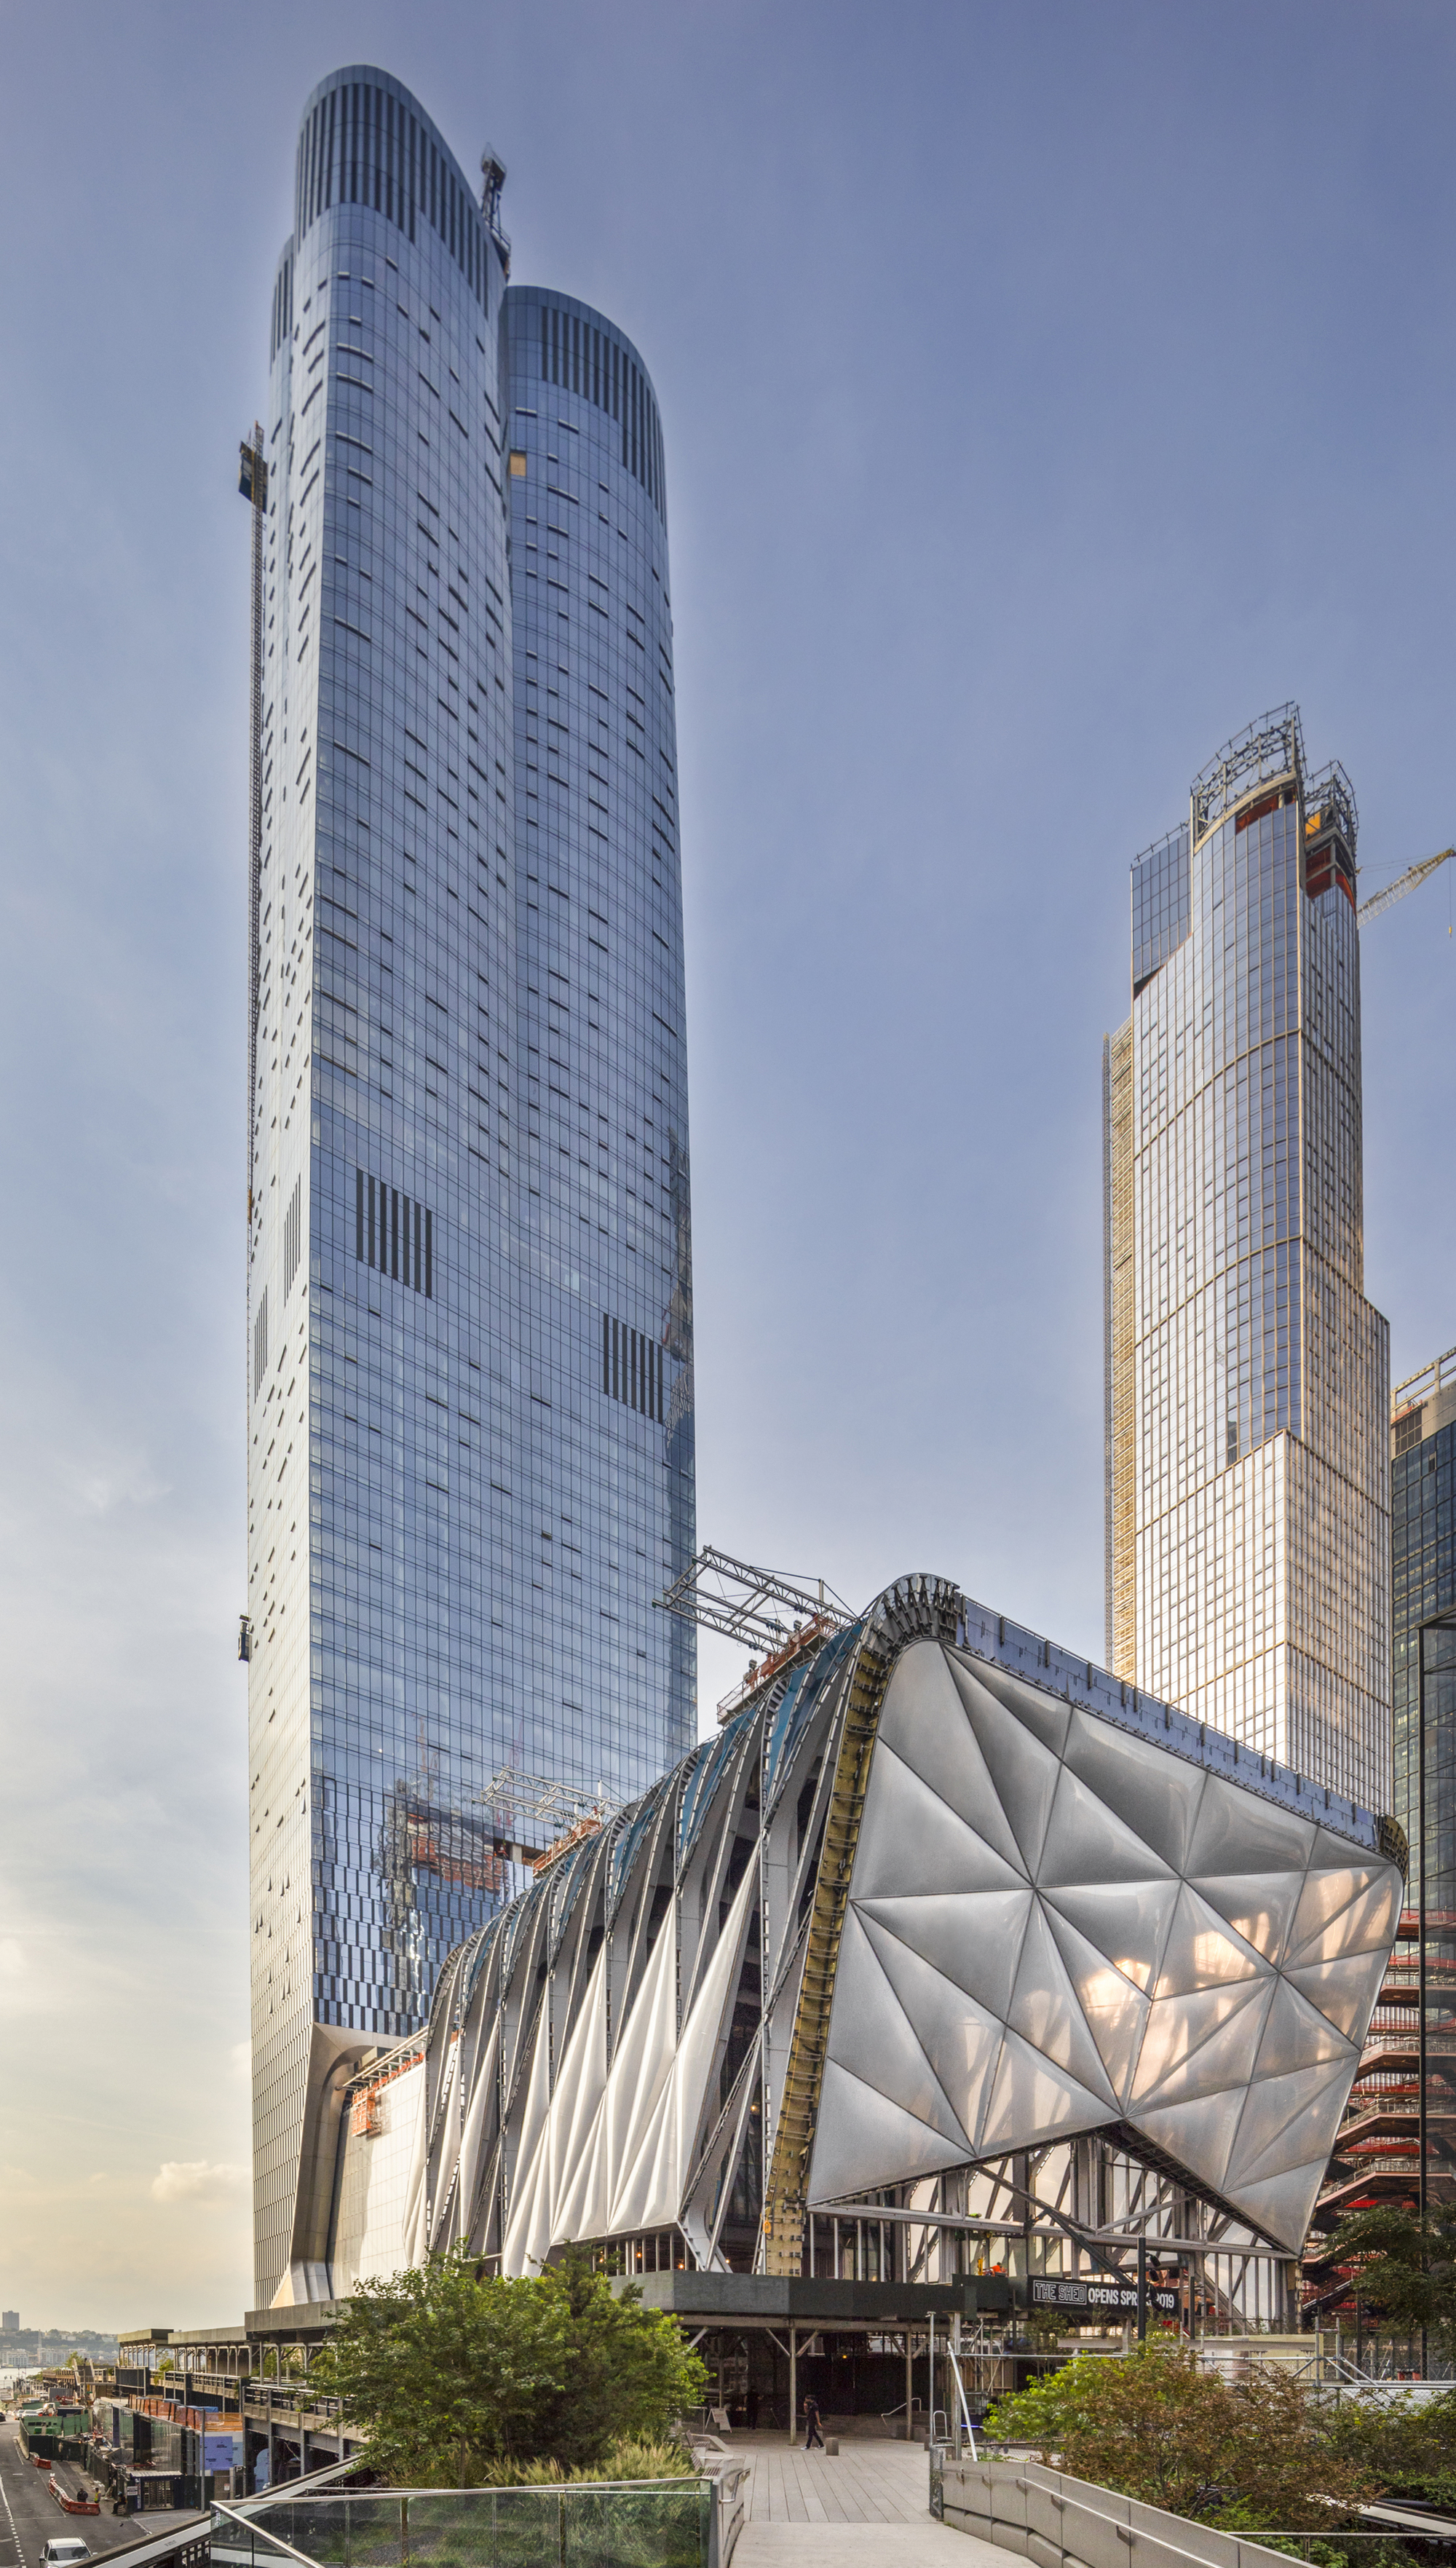 Skyscrapers architecture and design | ArchDaily